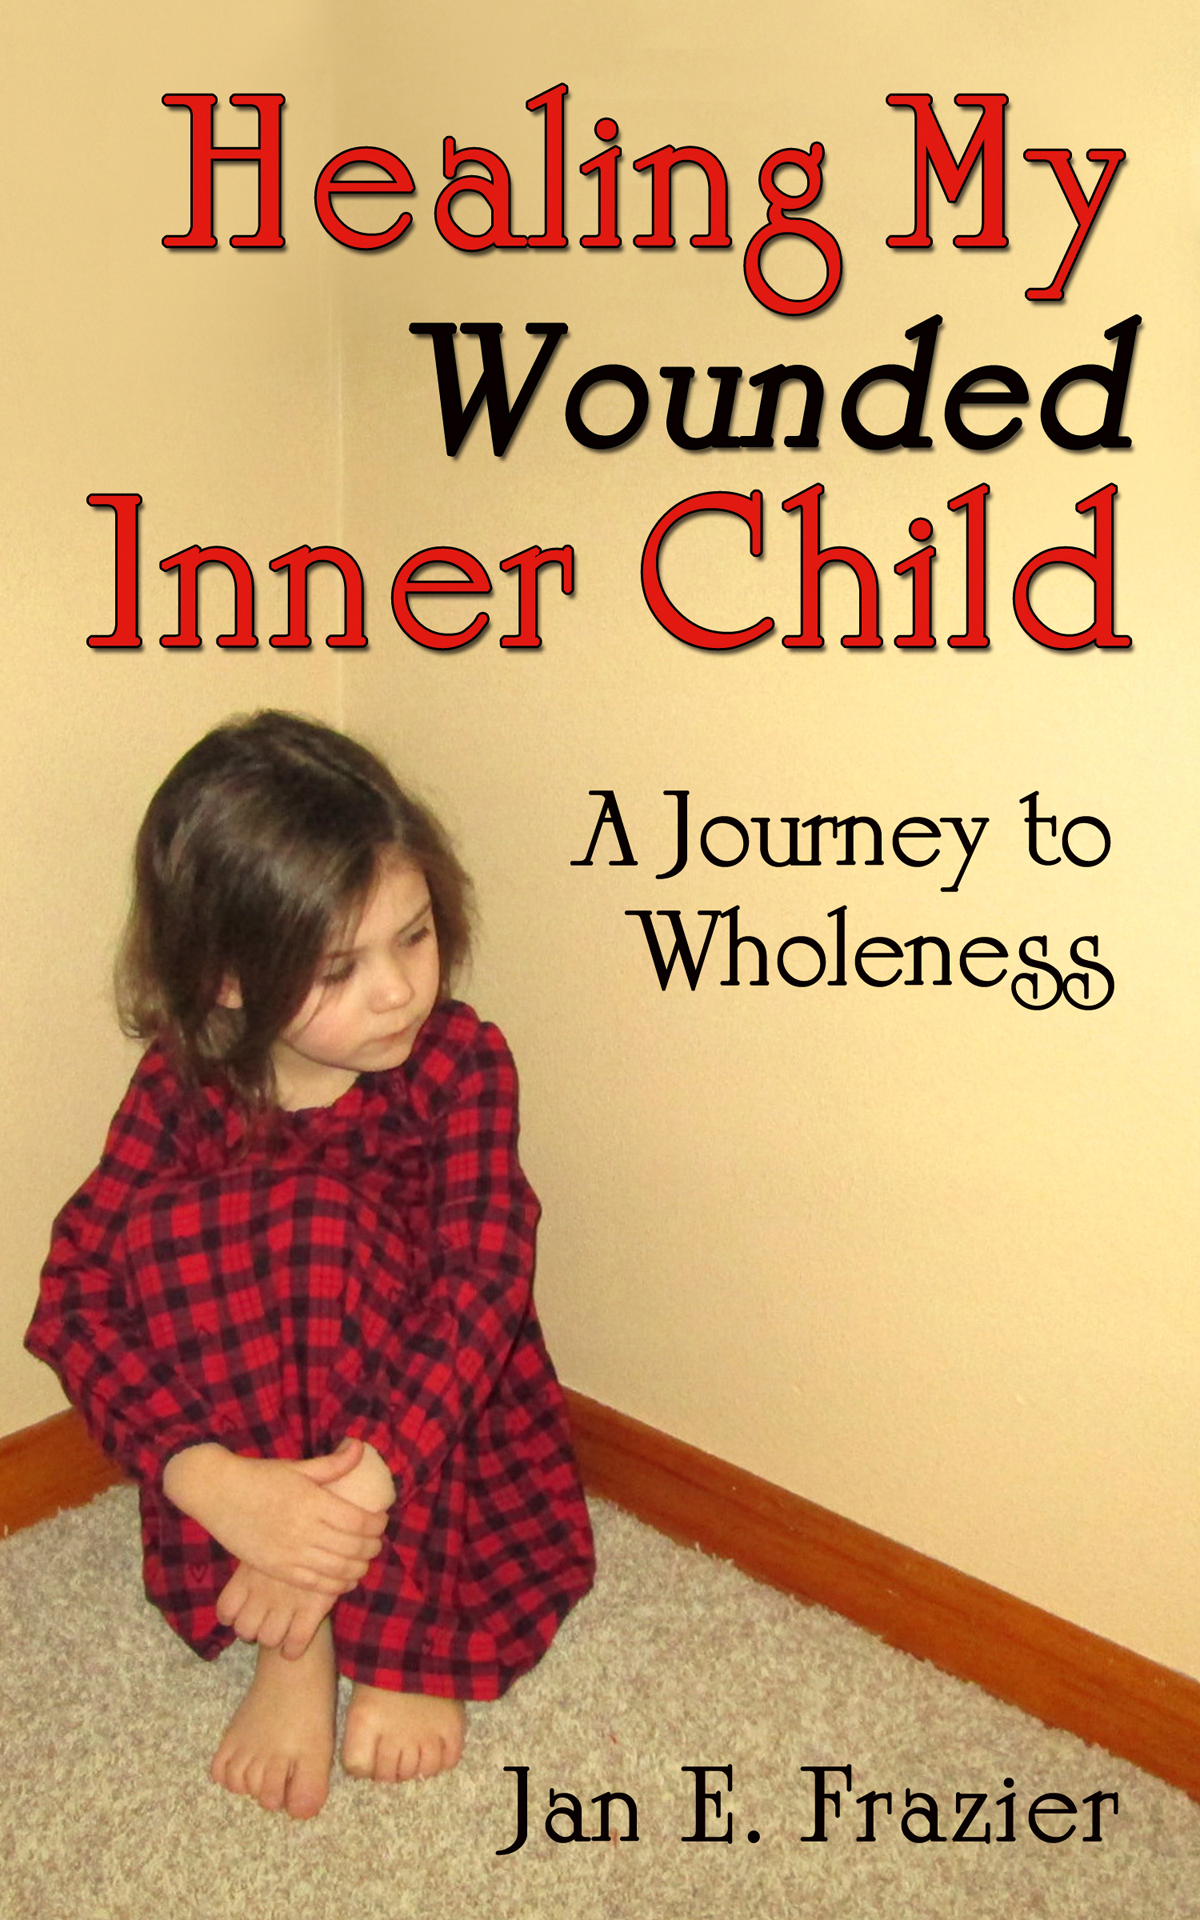 Healing My Wounded Inner Child